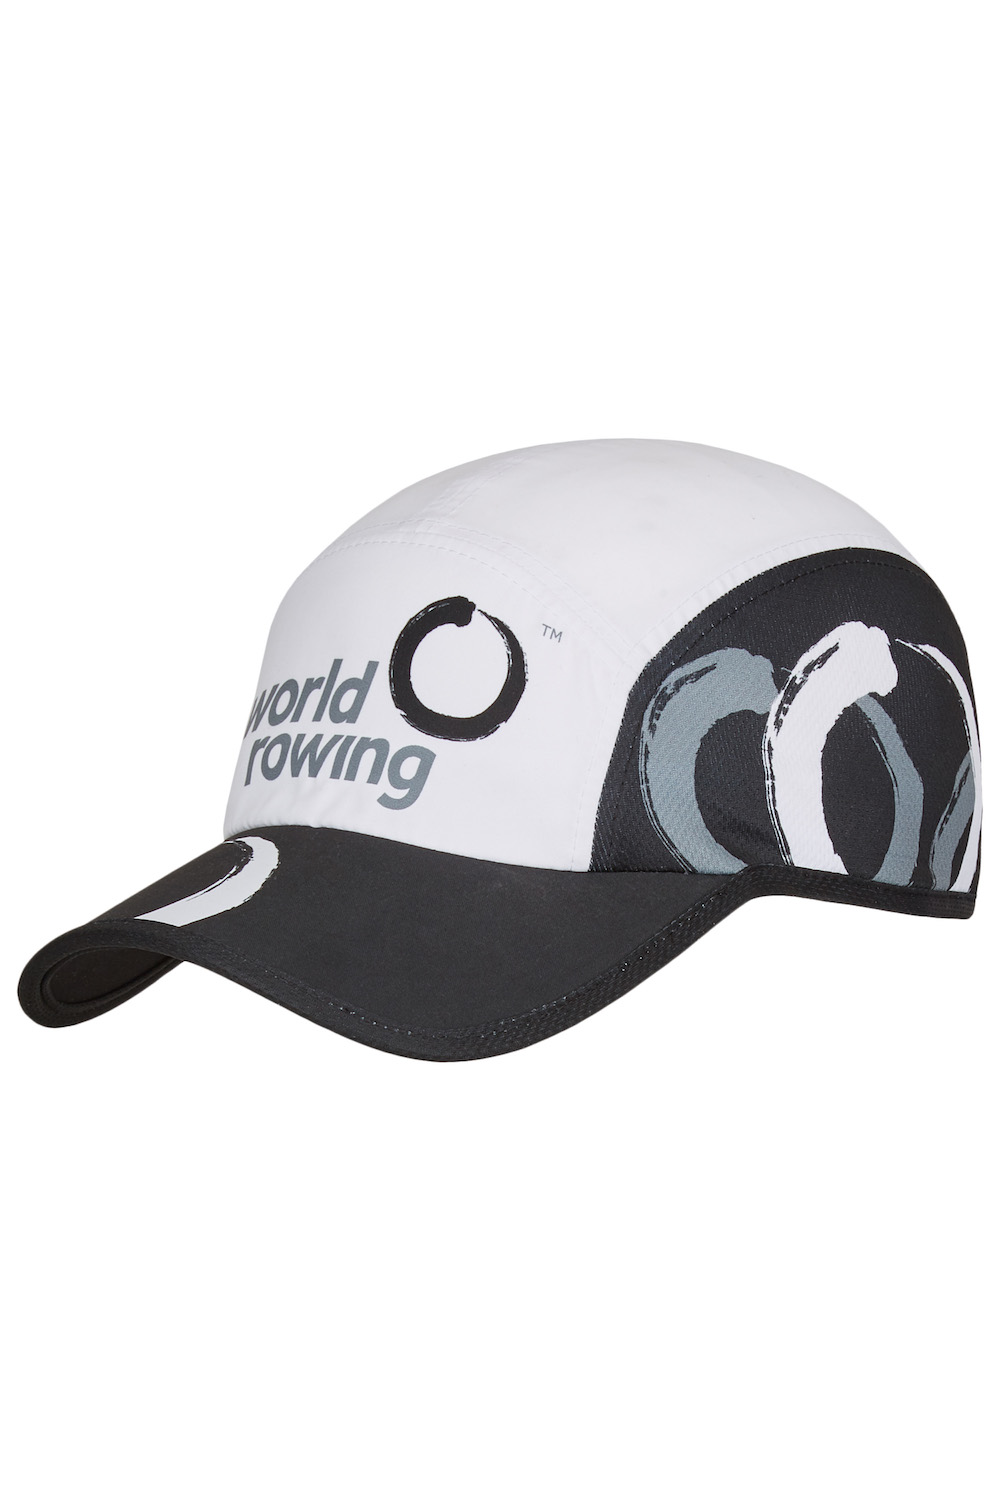 World Rowing Performance Cap - schwarz